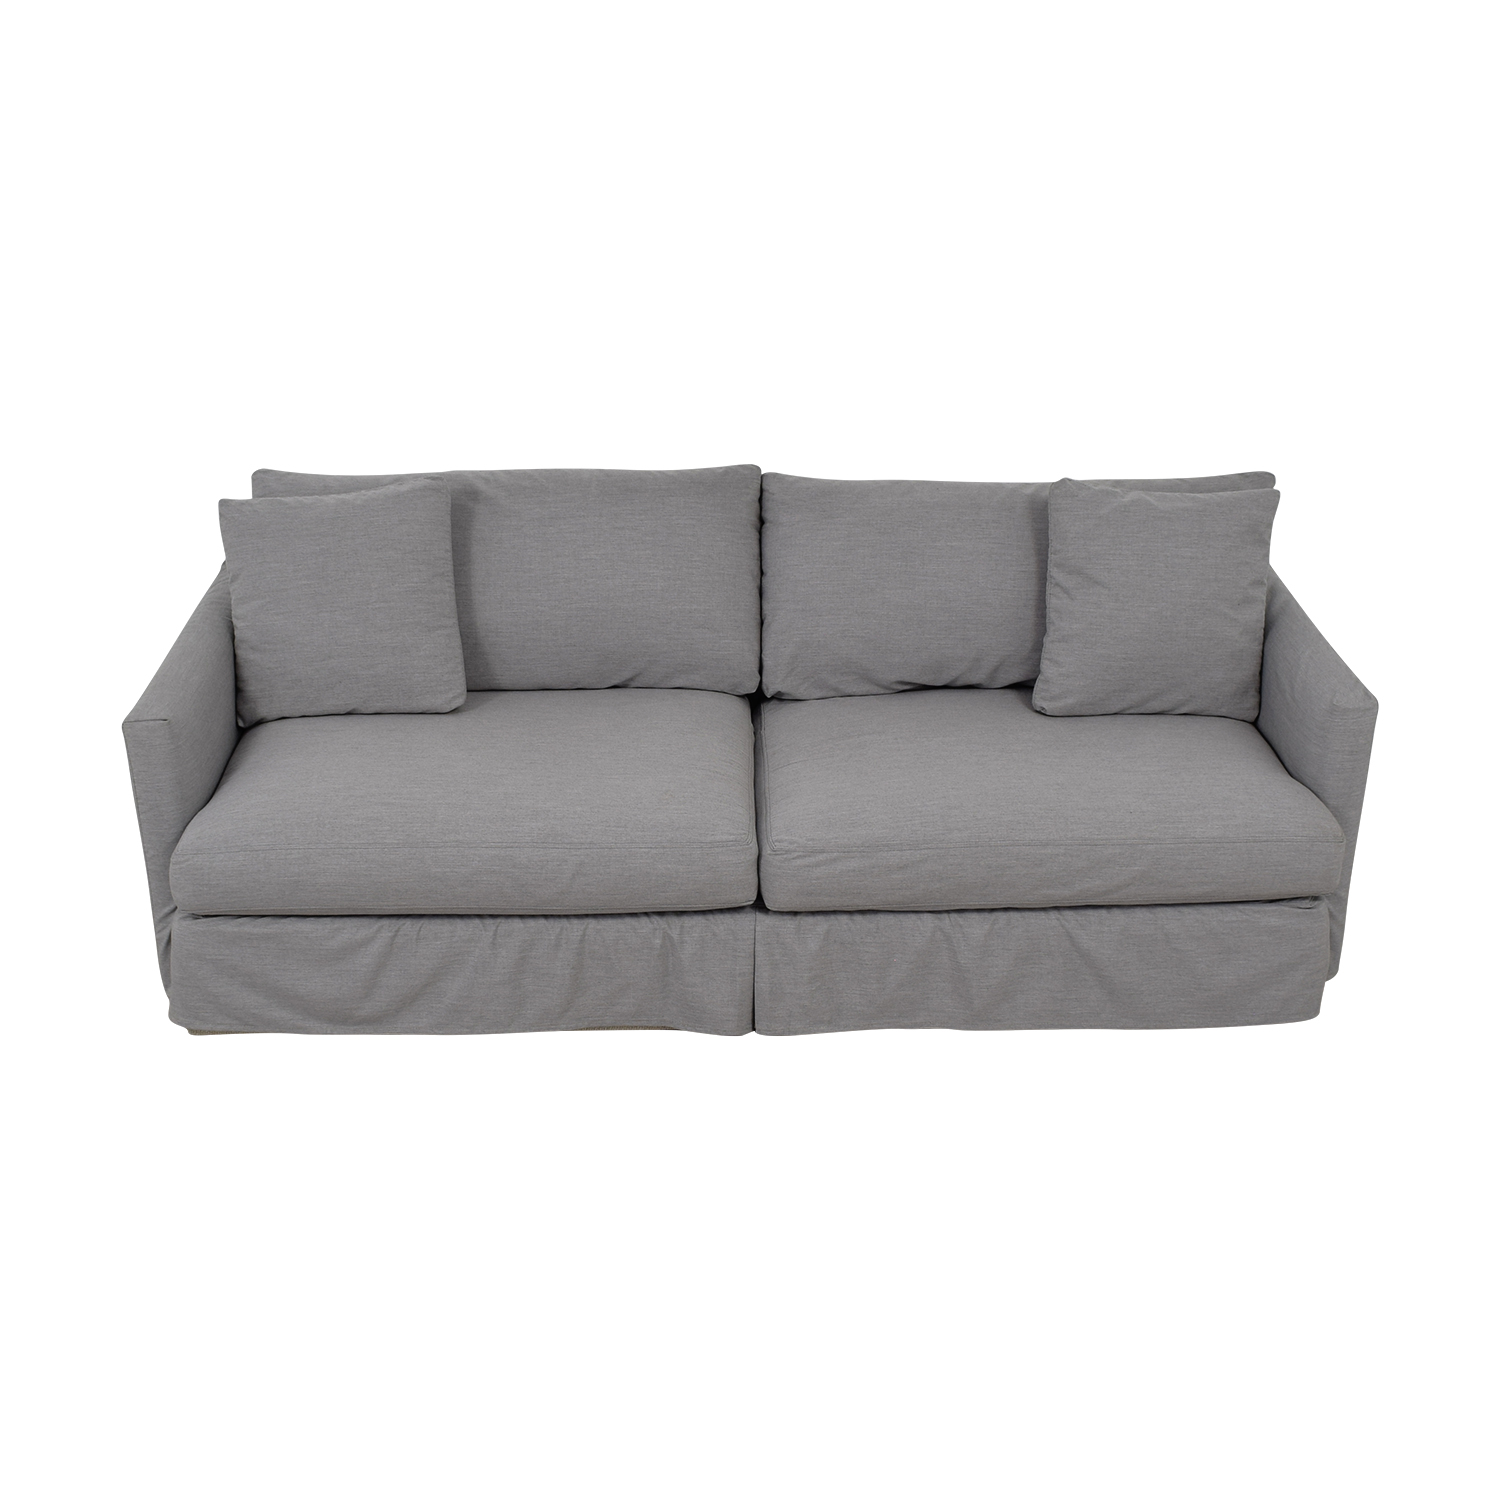 Crate & Barrel Lounge II Petite Grey Slipcovered Couch Crate & Barrel